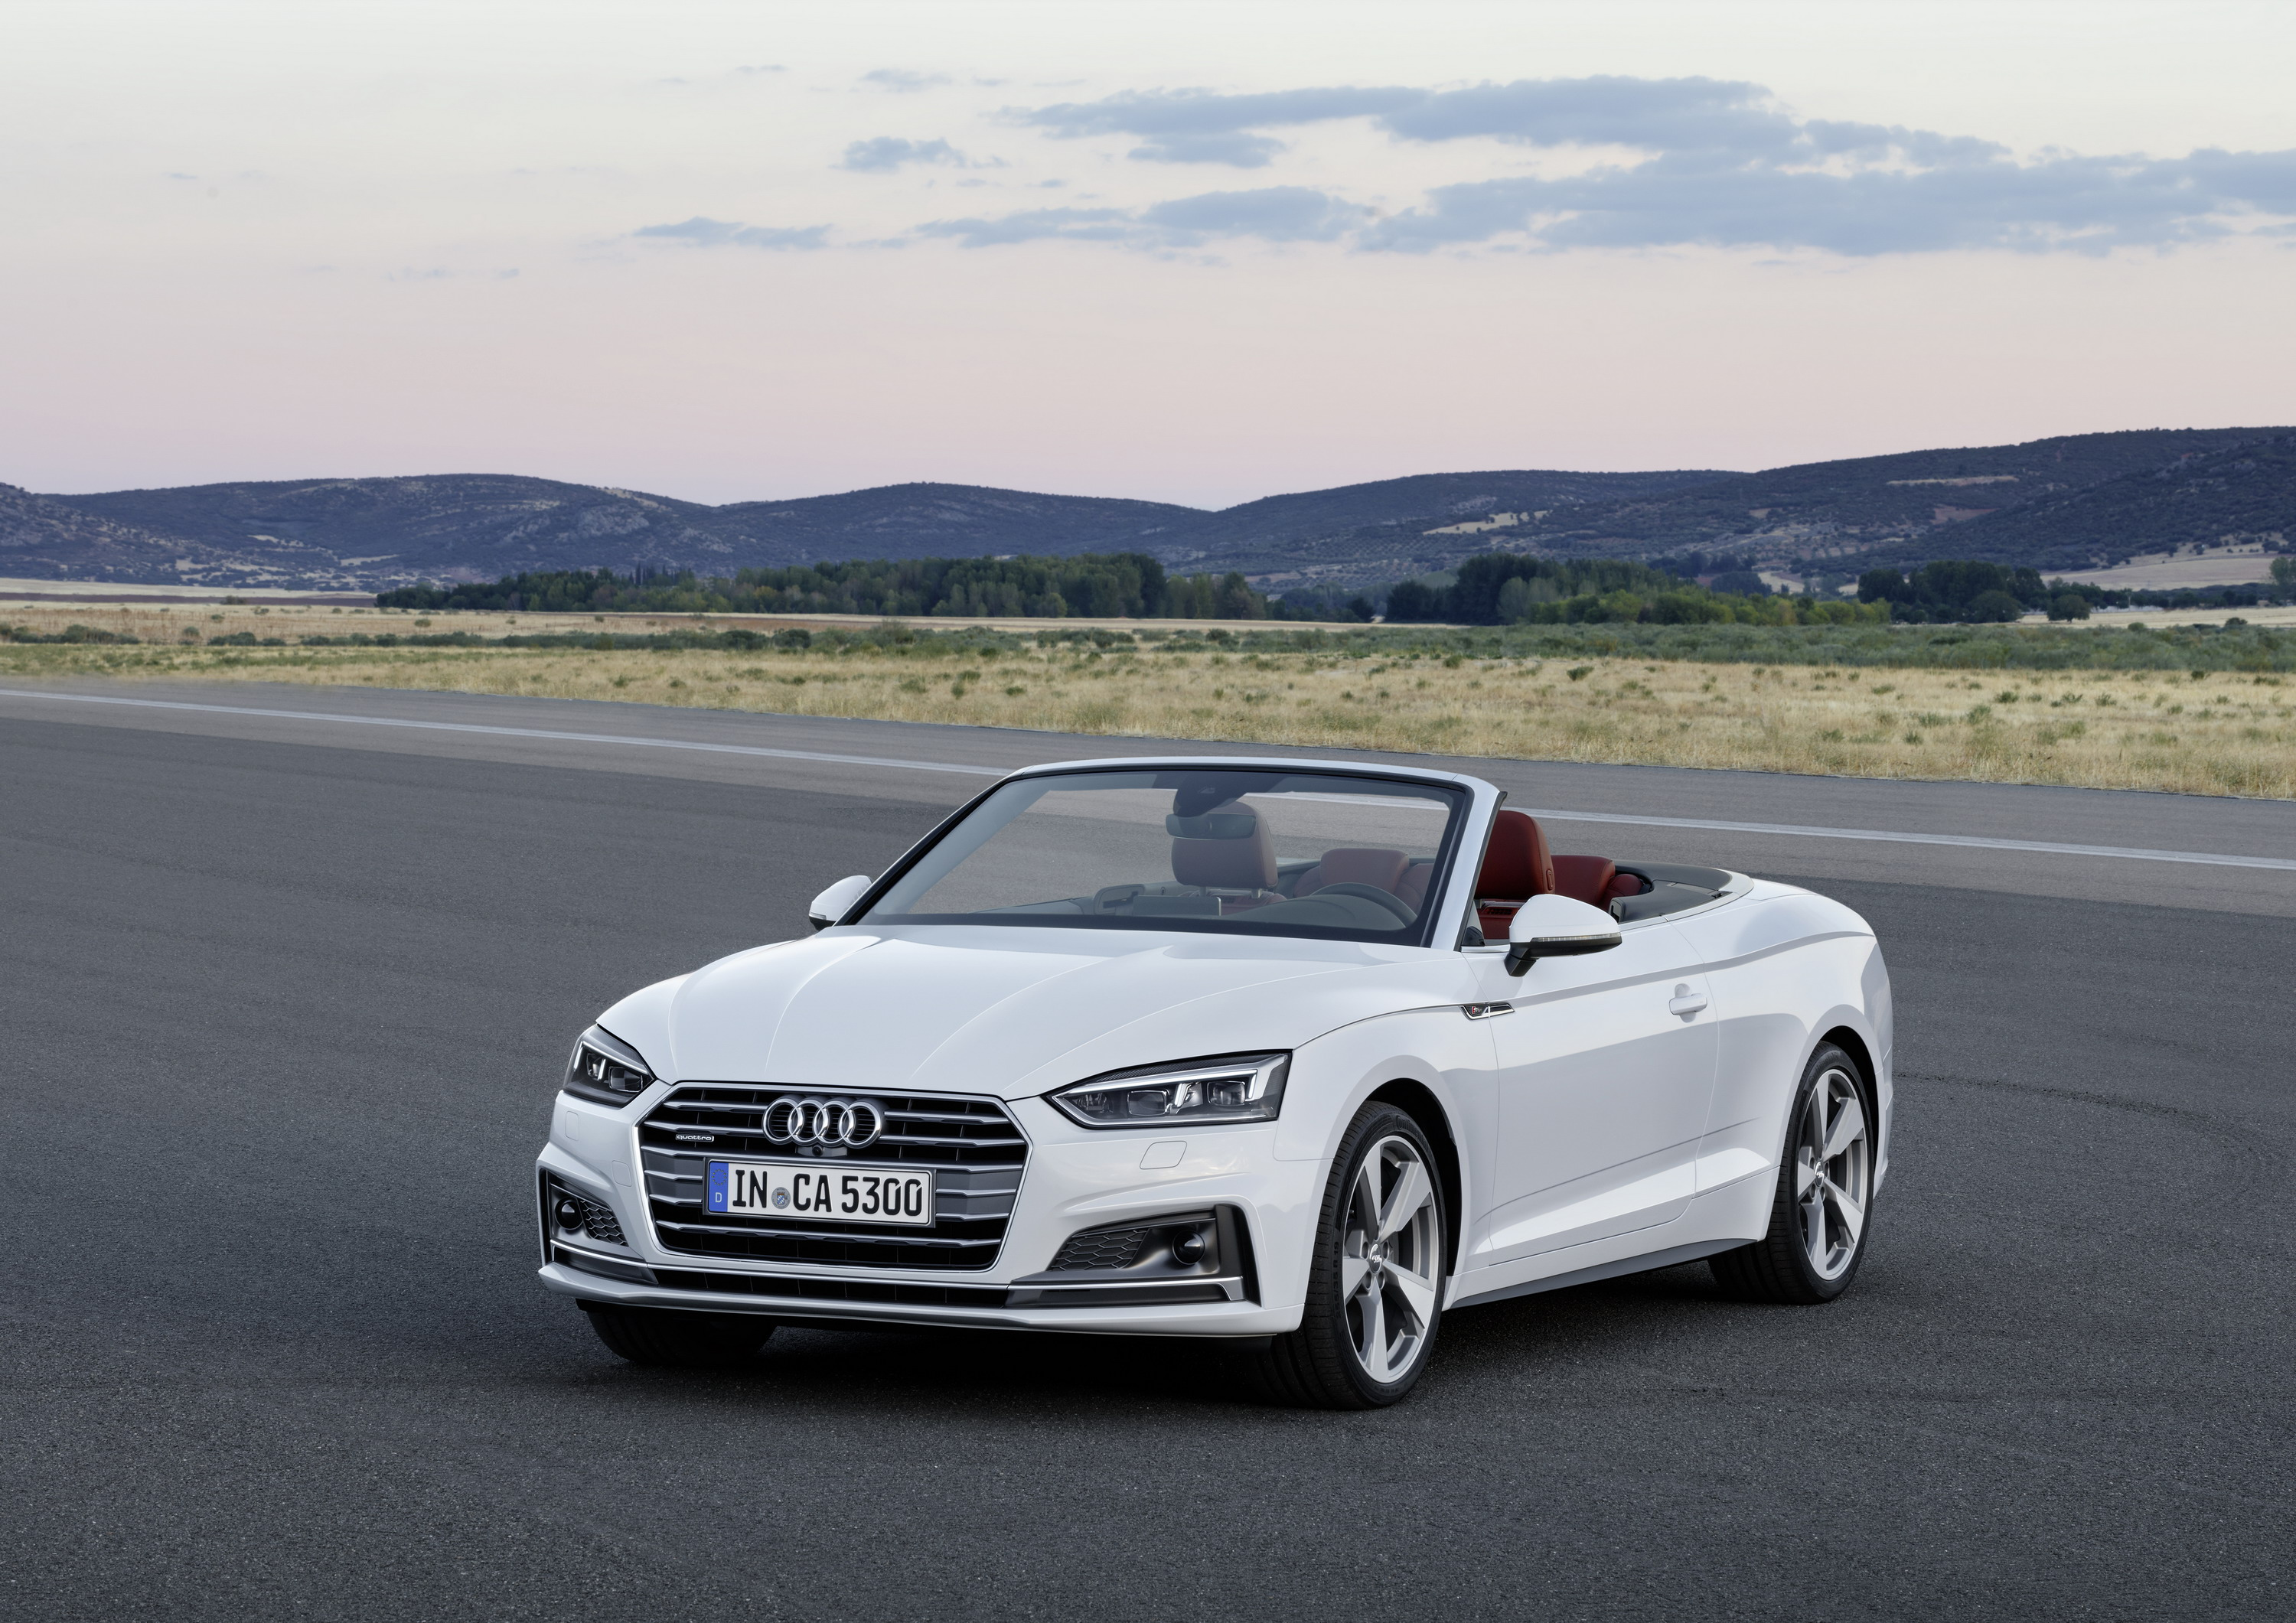 releases us audi edition of season end event news and images year includes special sales en